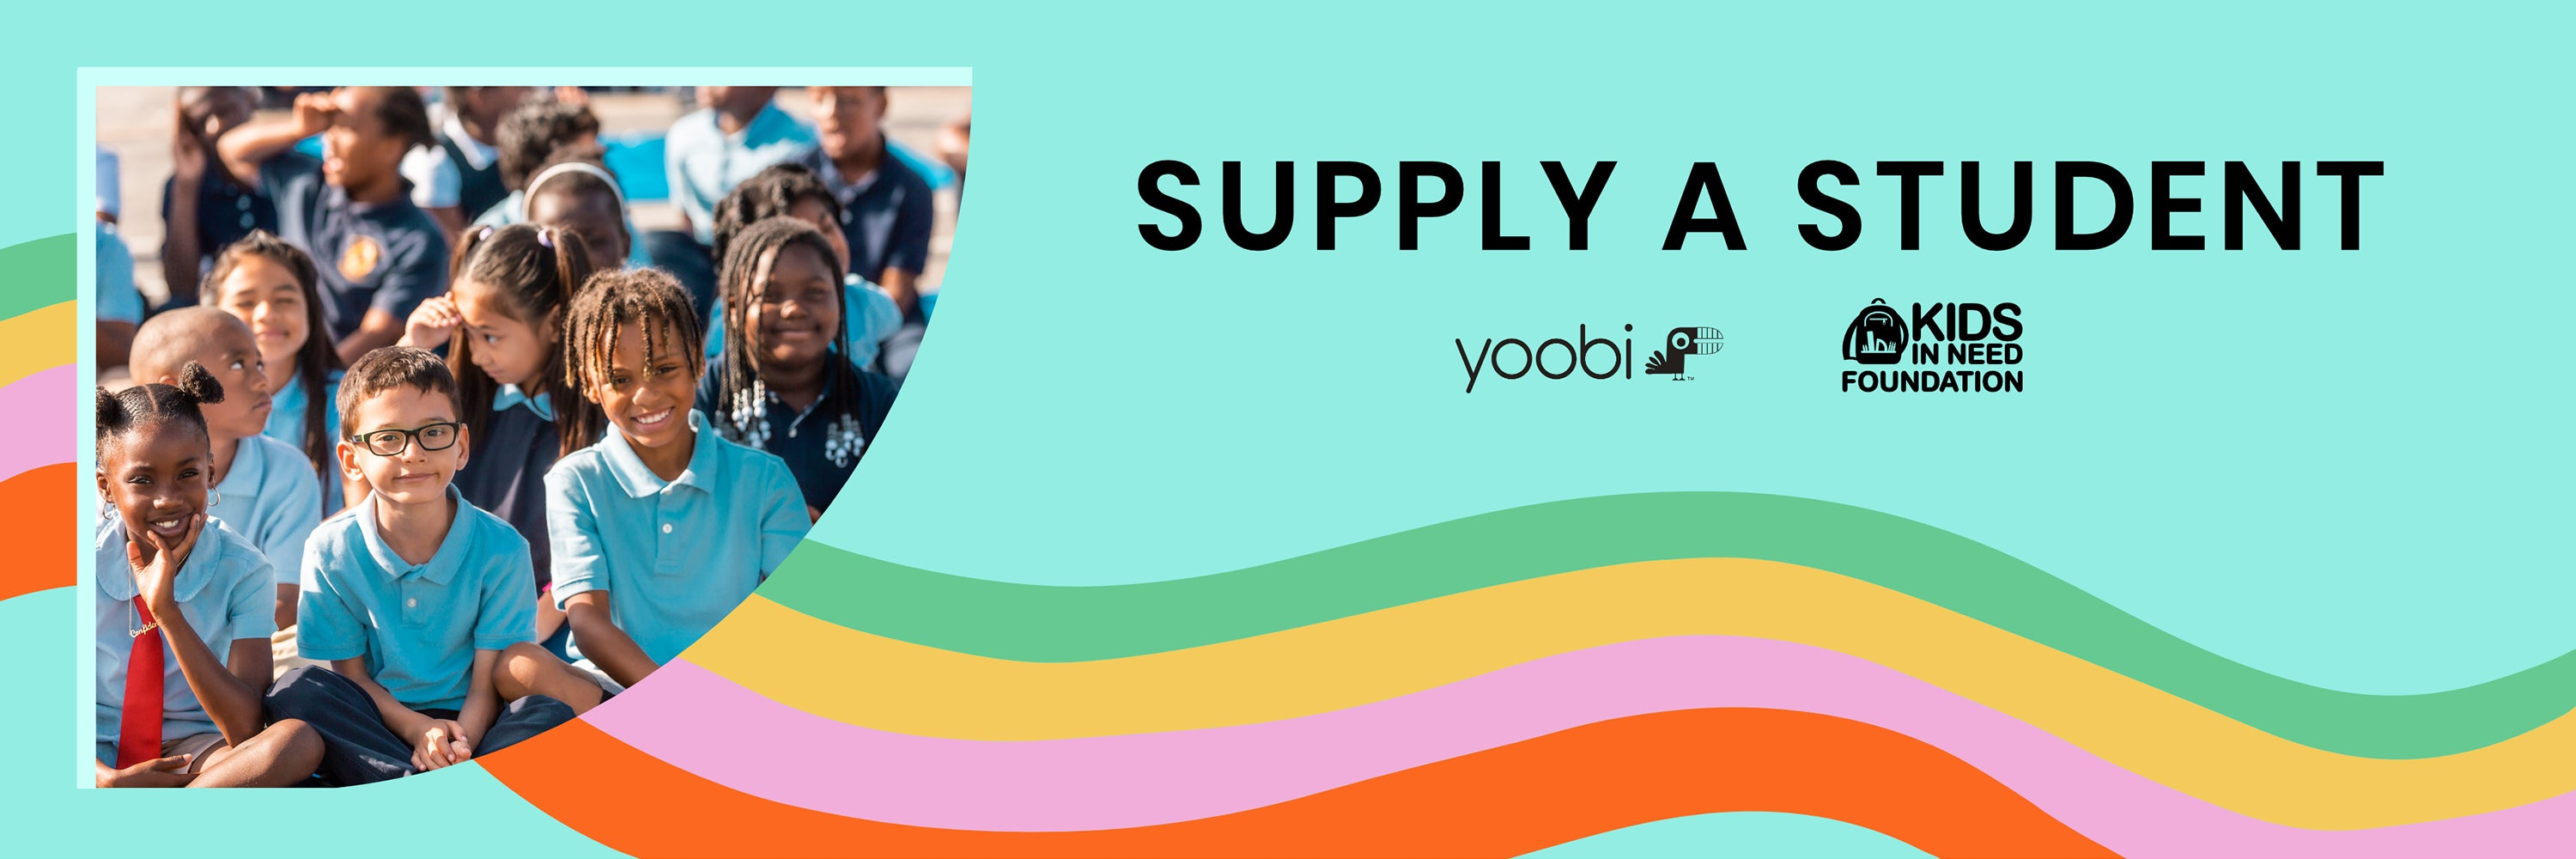 Supply A Classroom - Yoobi x Kids In Need Foundation (KINF)